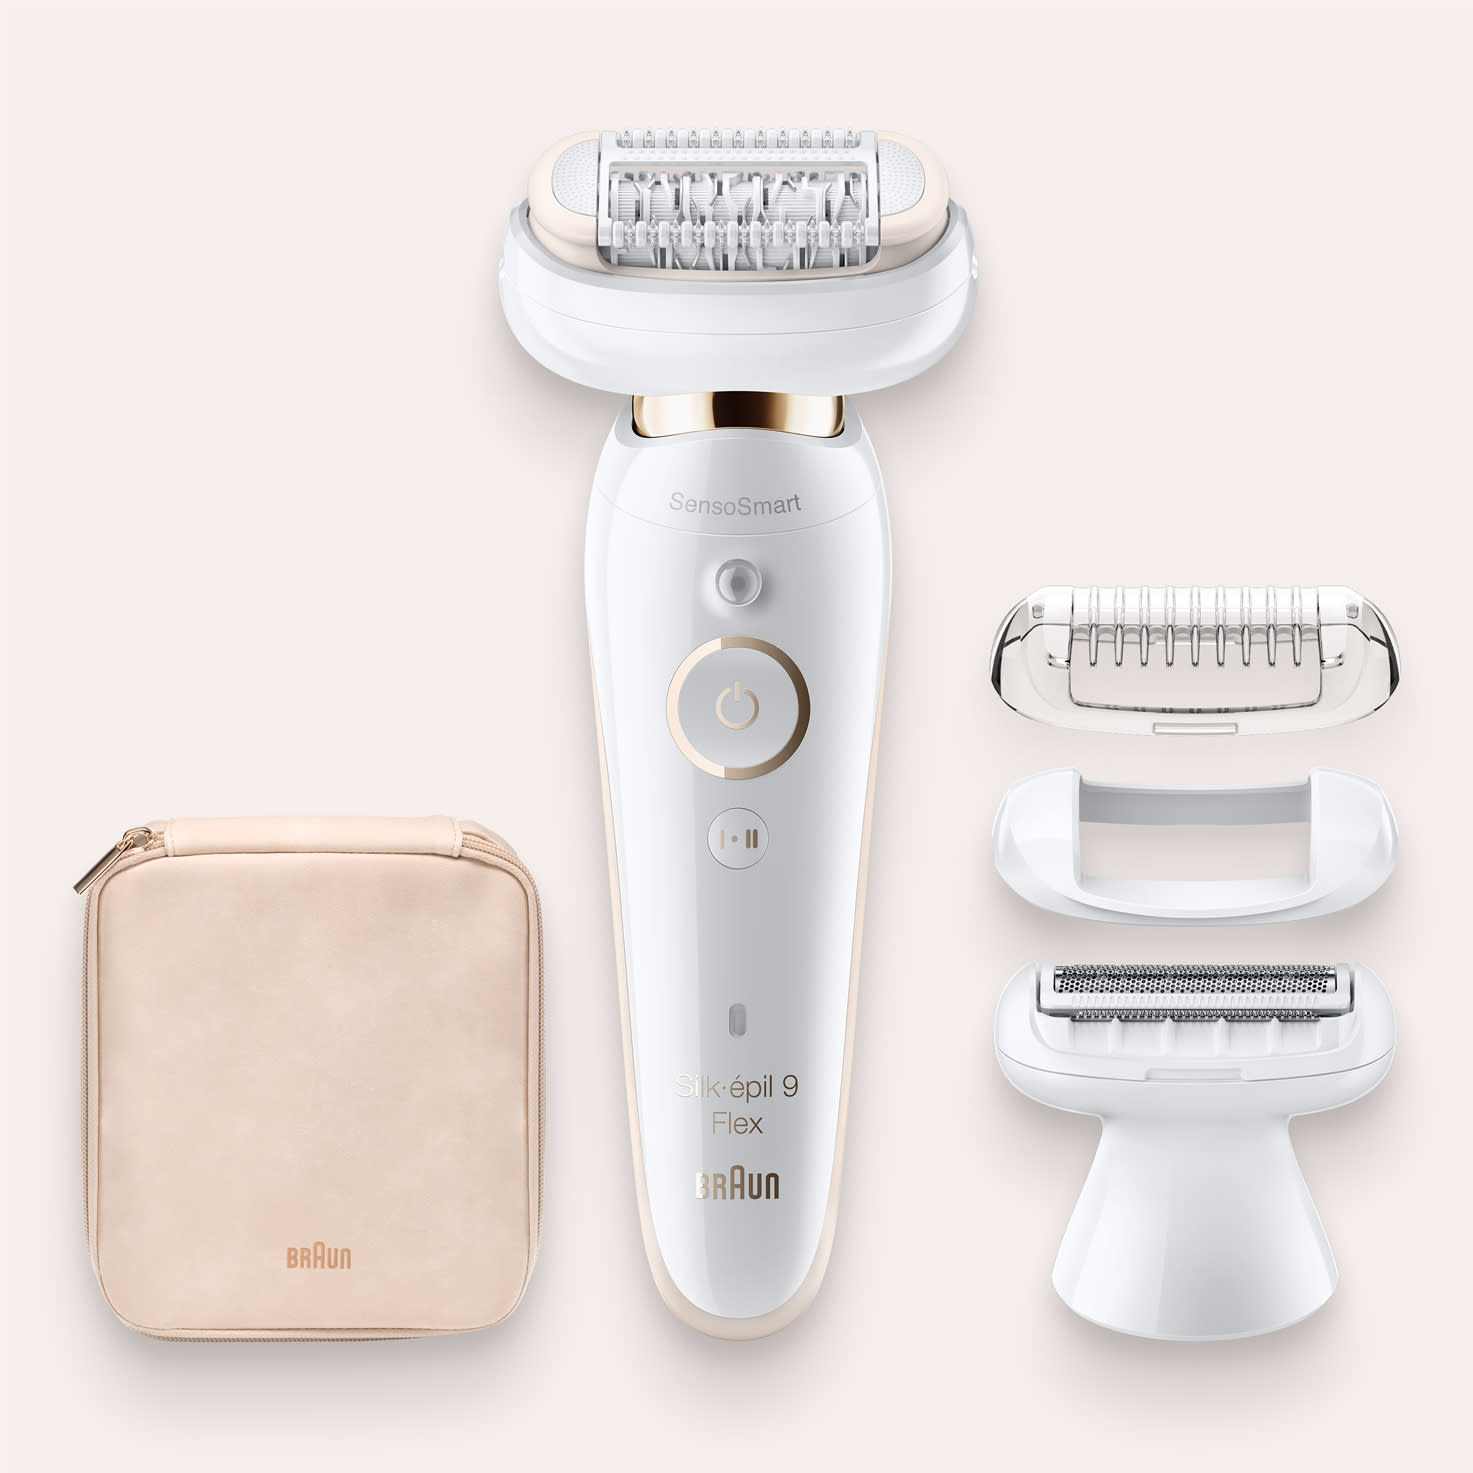 Silk-épil 9 Flex 9-002 epilator